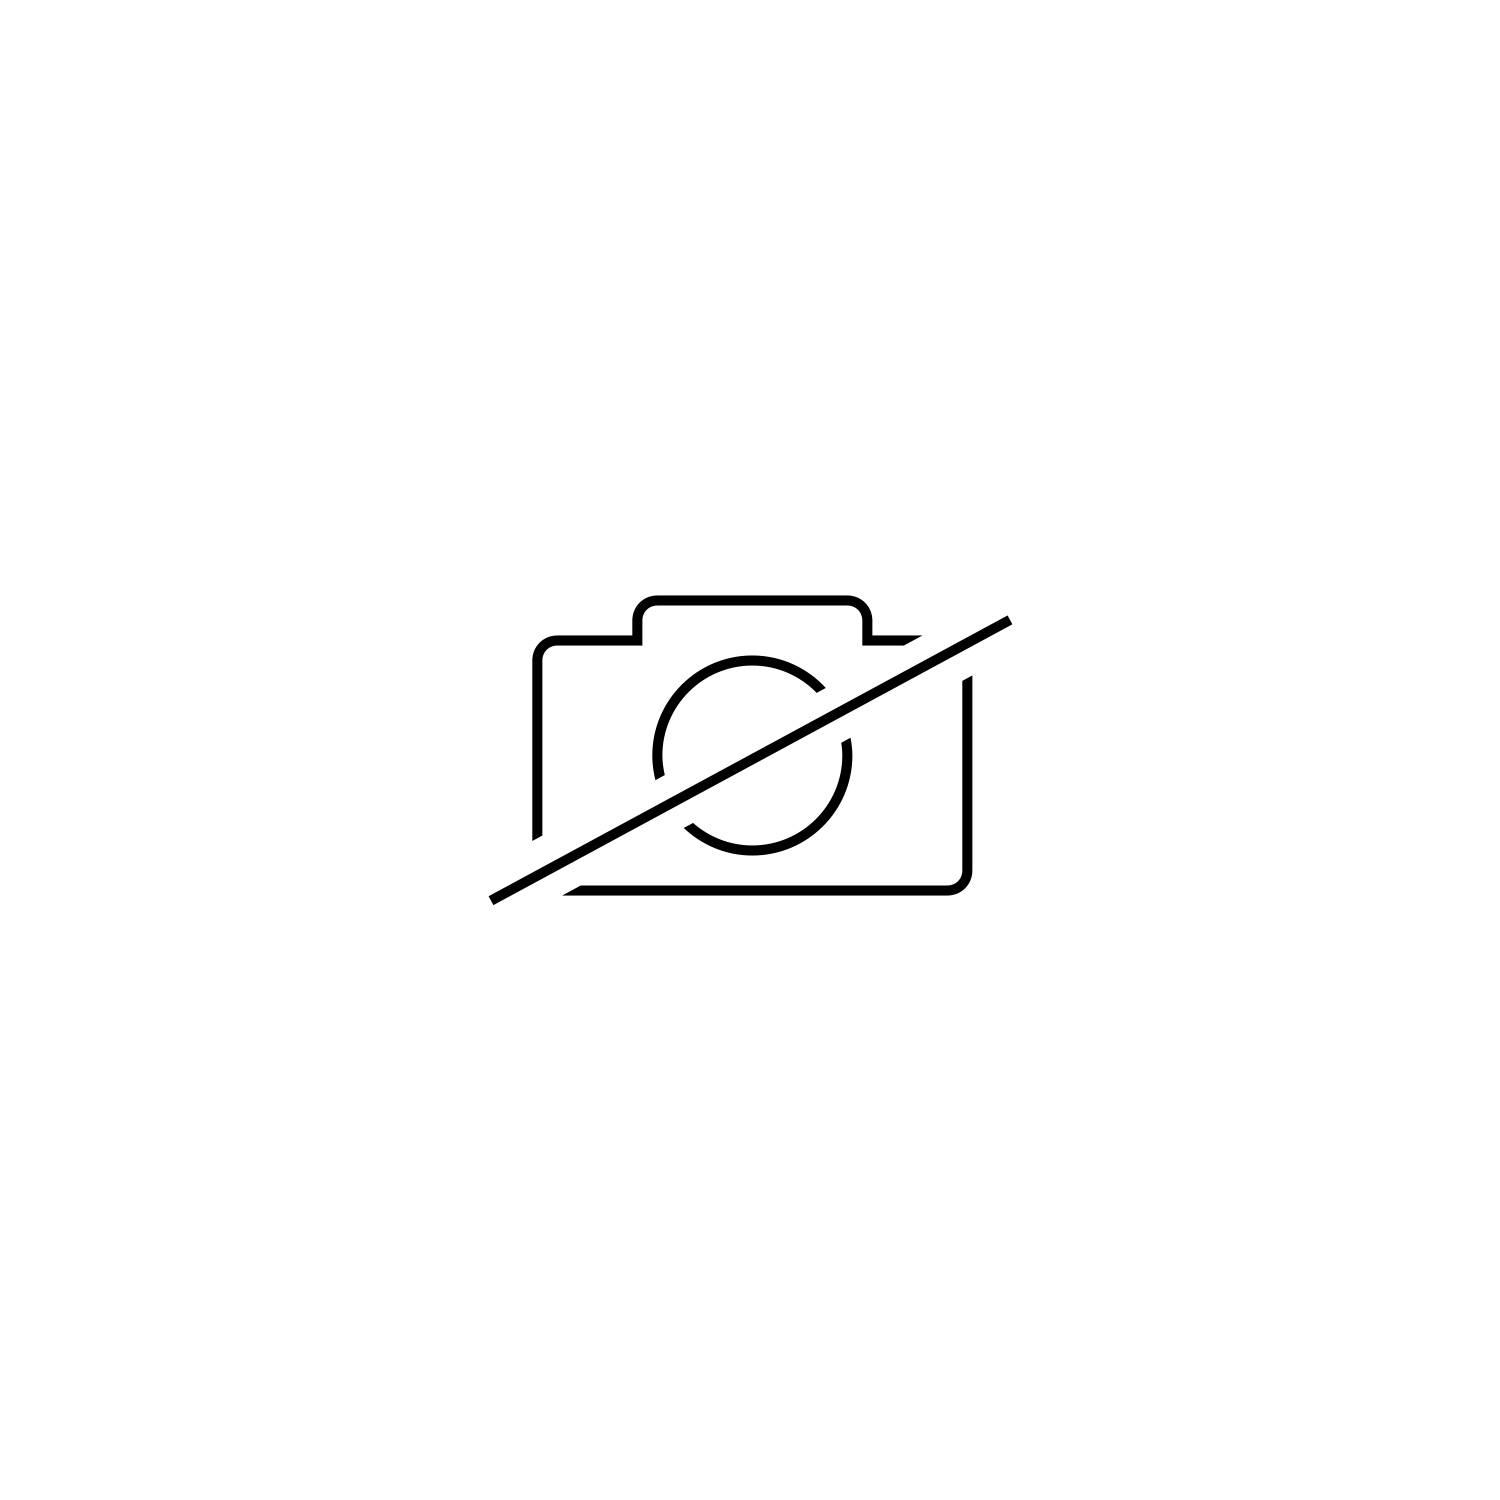 Audi Poloshirt, Mens, Dark grey, XXXL